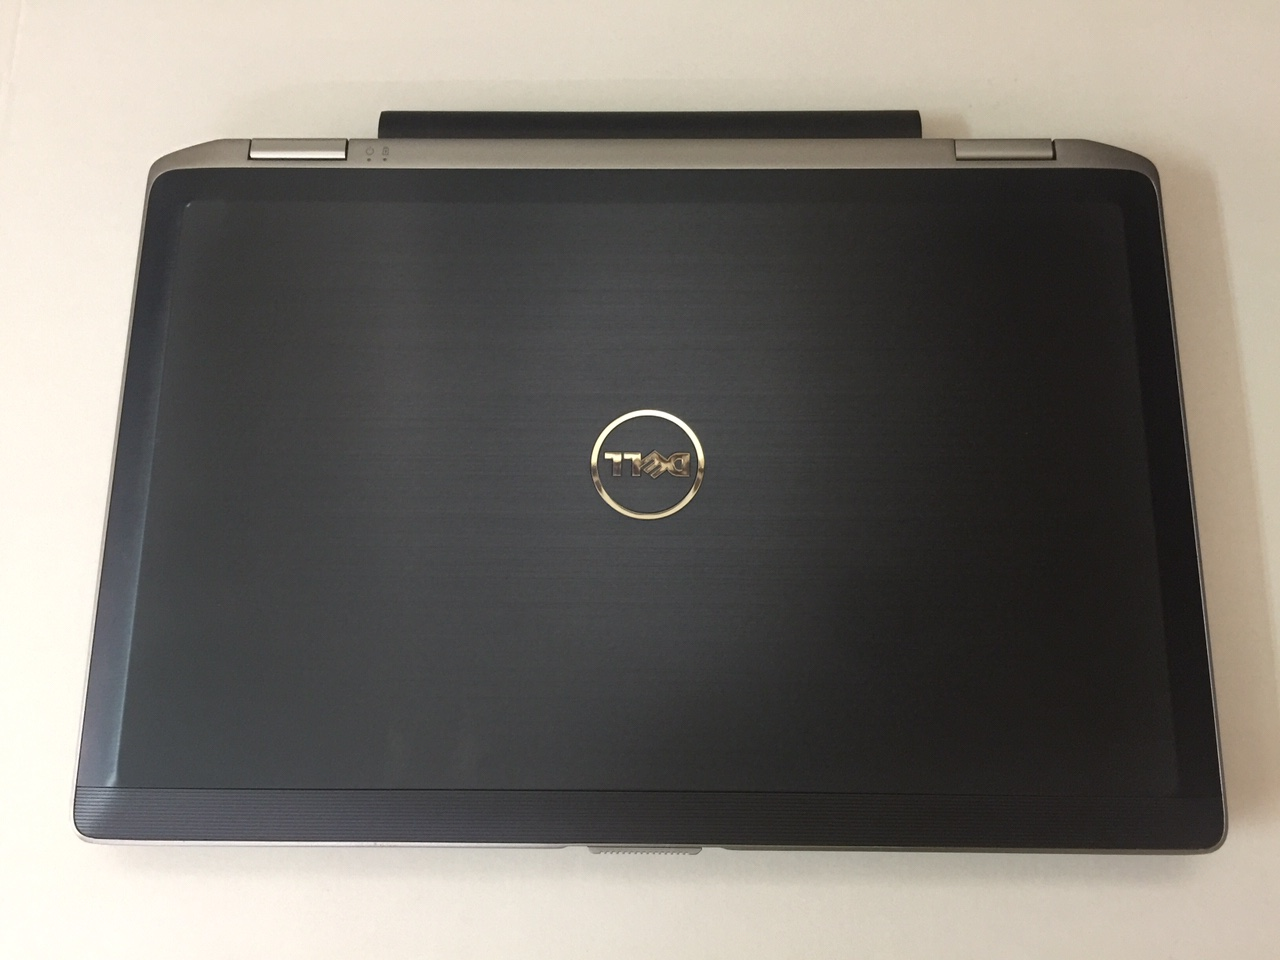 DELL LATITUDE E5520 I7 2640M 4GB 320GB 15.6